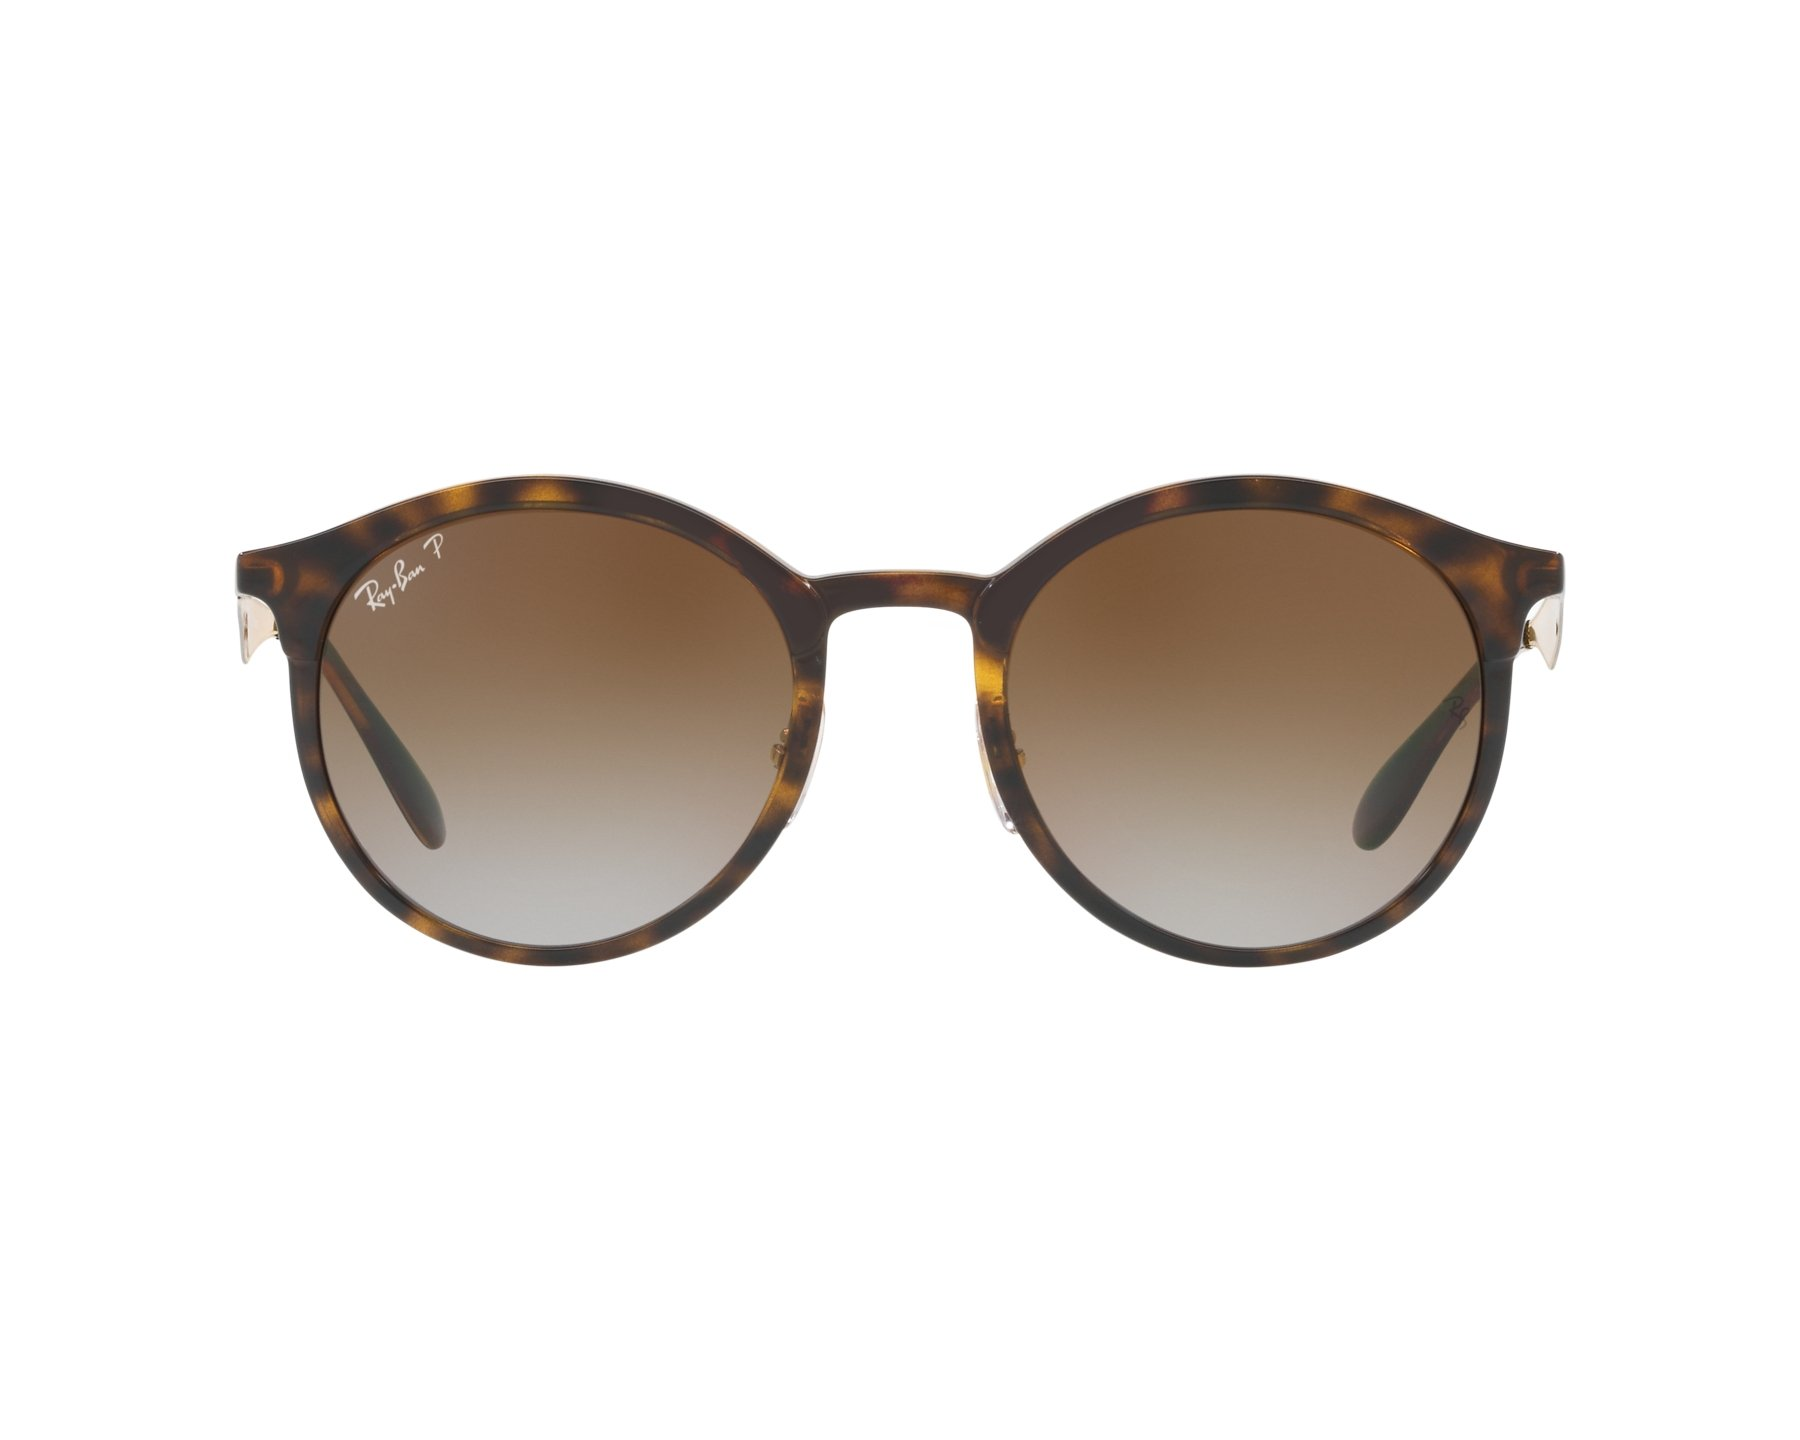 Ray-Ban RB4277 710/T5 51 mm/21 mm GRdLtM2